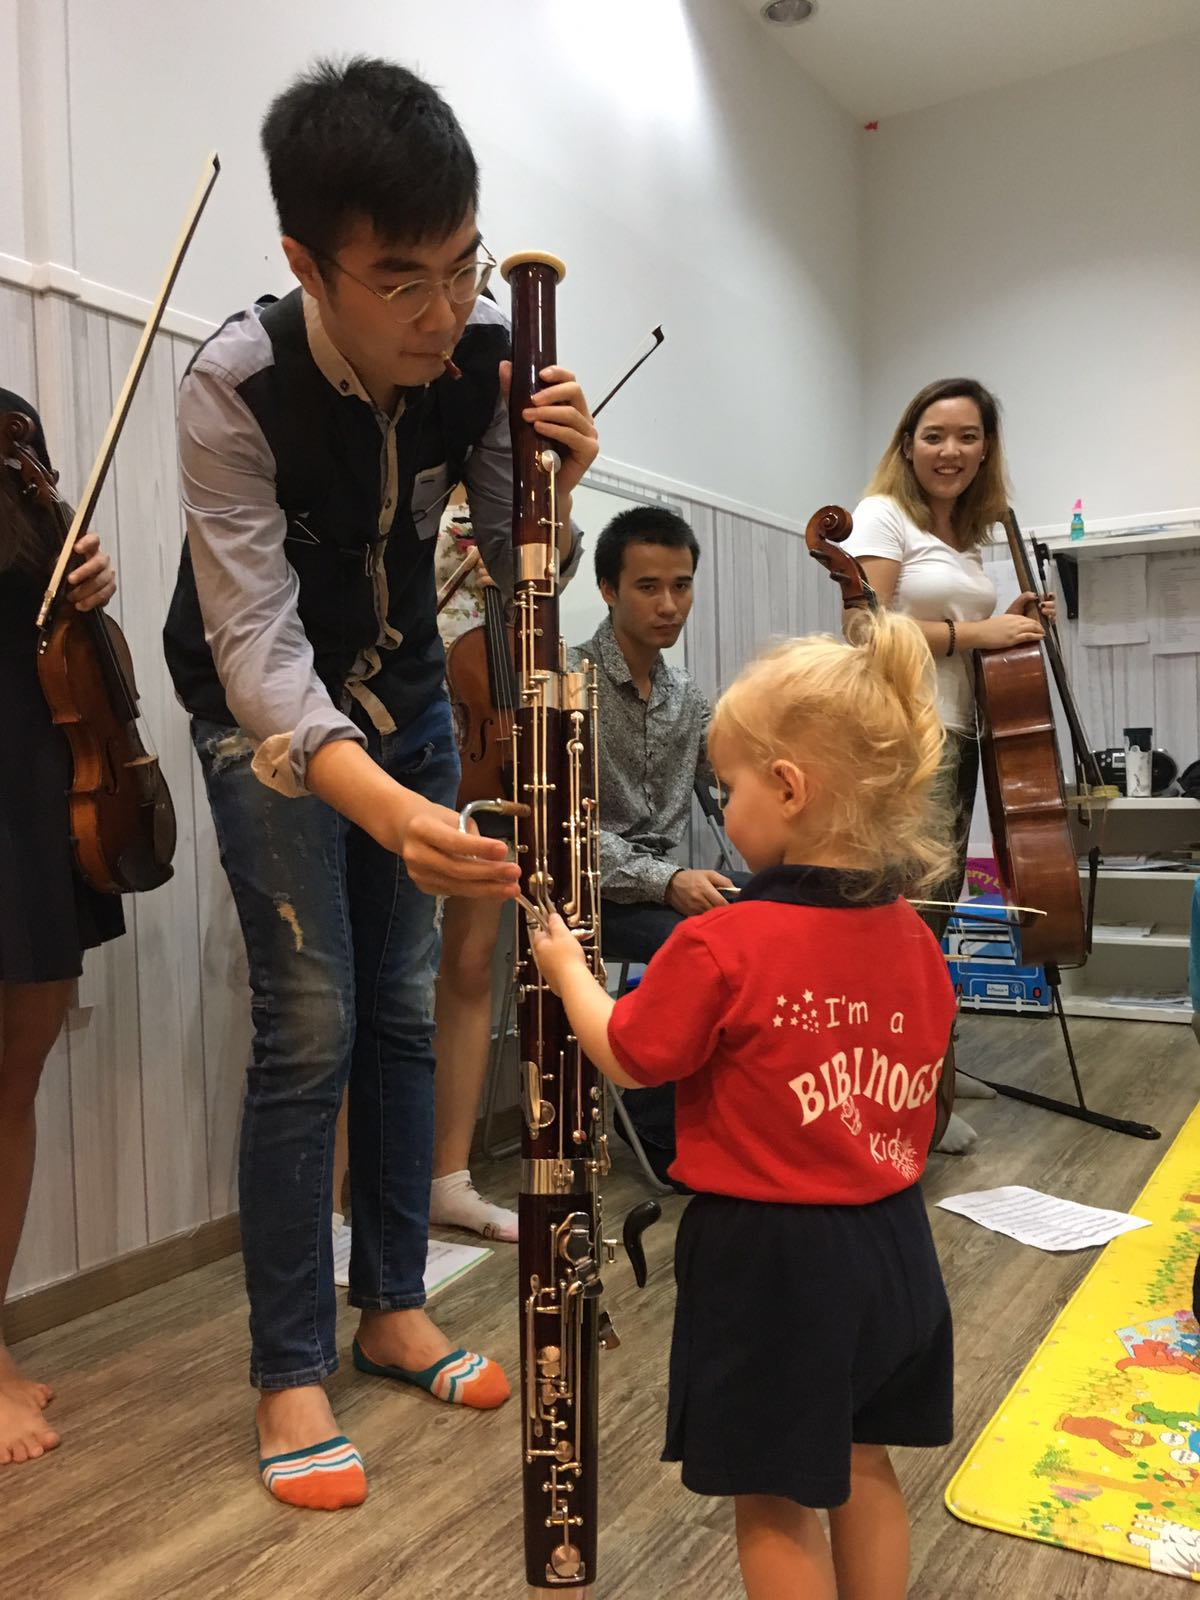 The bassoon is taller than the child! We are all fascinated by the bassoon's appearance and sound.